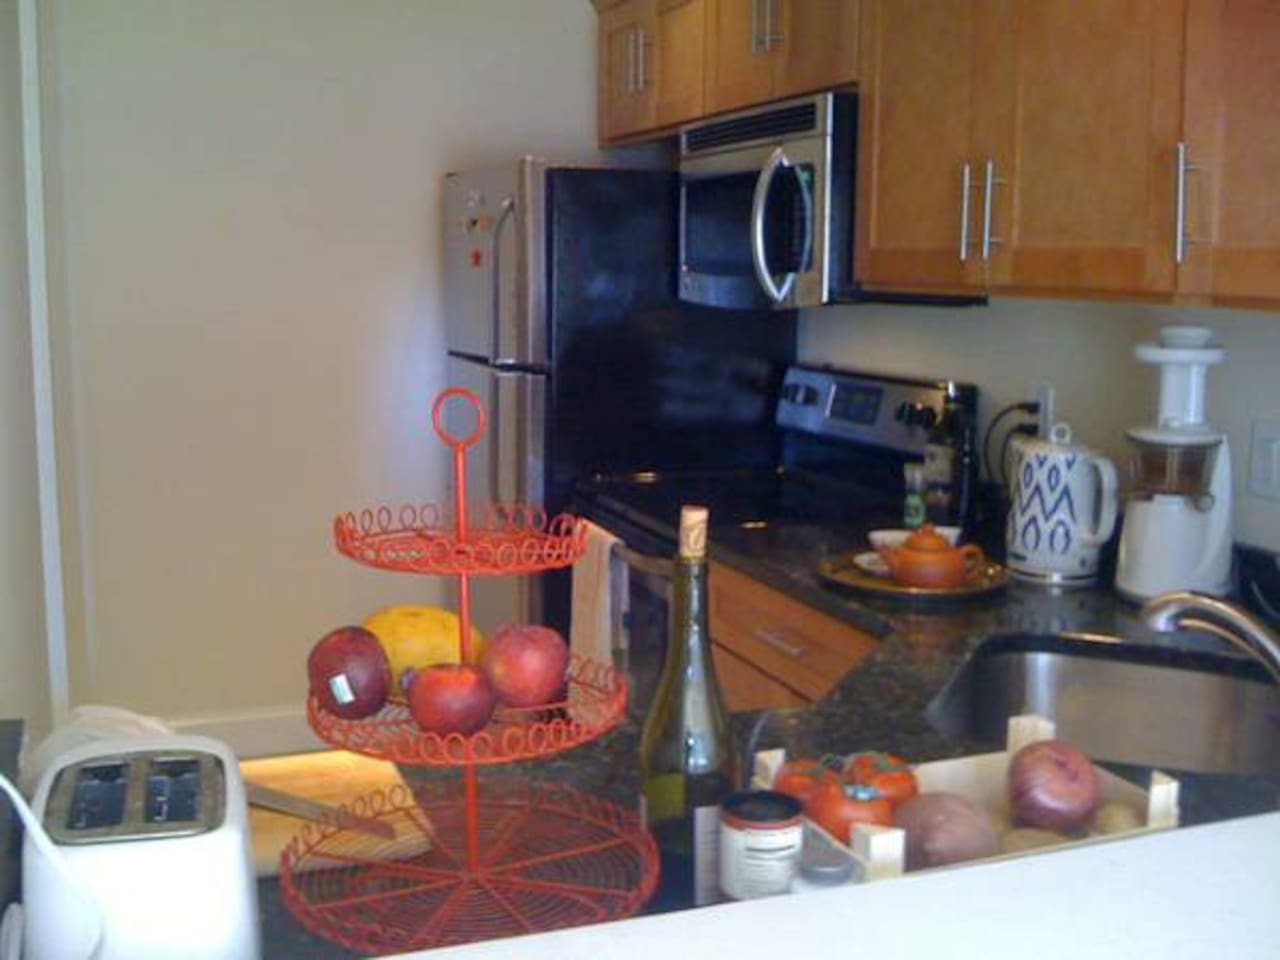 Kitchen, remodeled last year with stainless steel appliances including dish washer, and marble counters